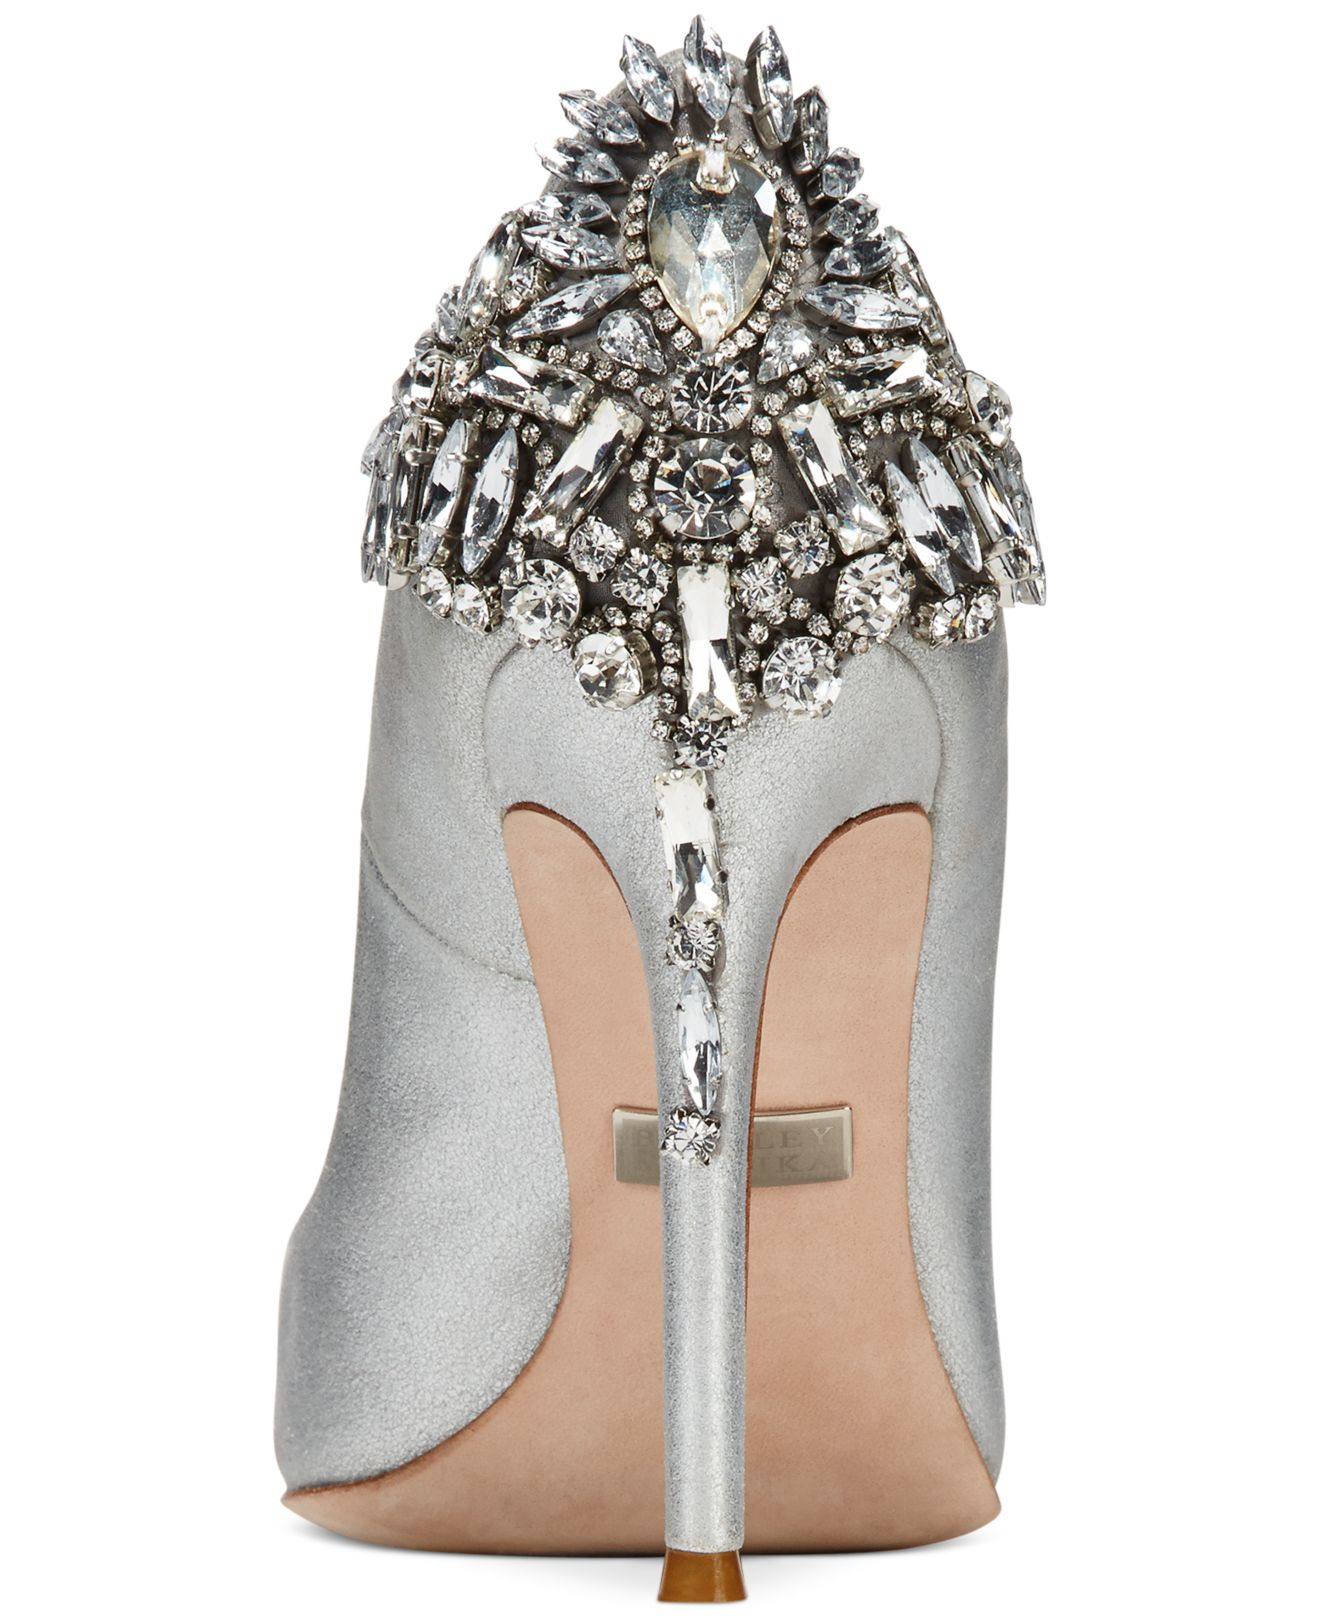 Badgley mischka Poetry Evening Pumps in Metallic